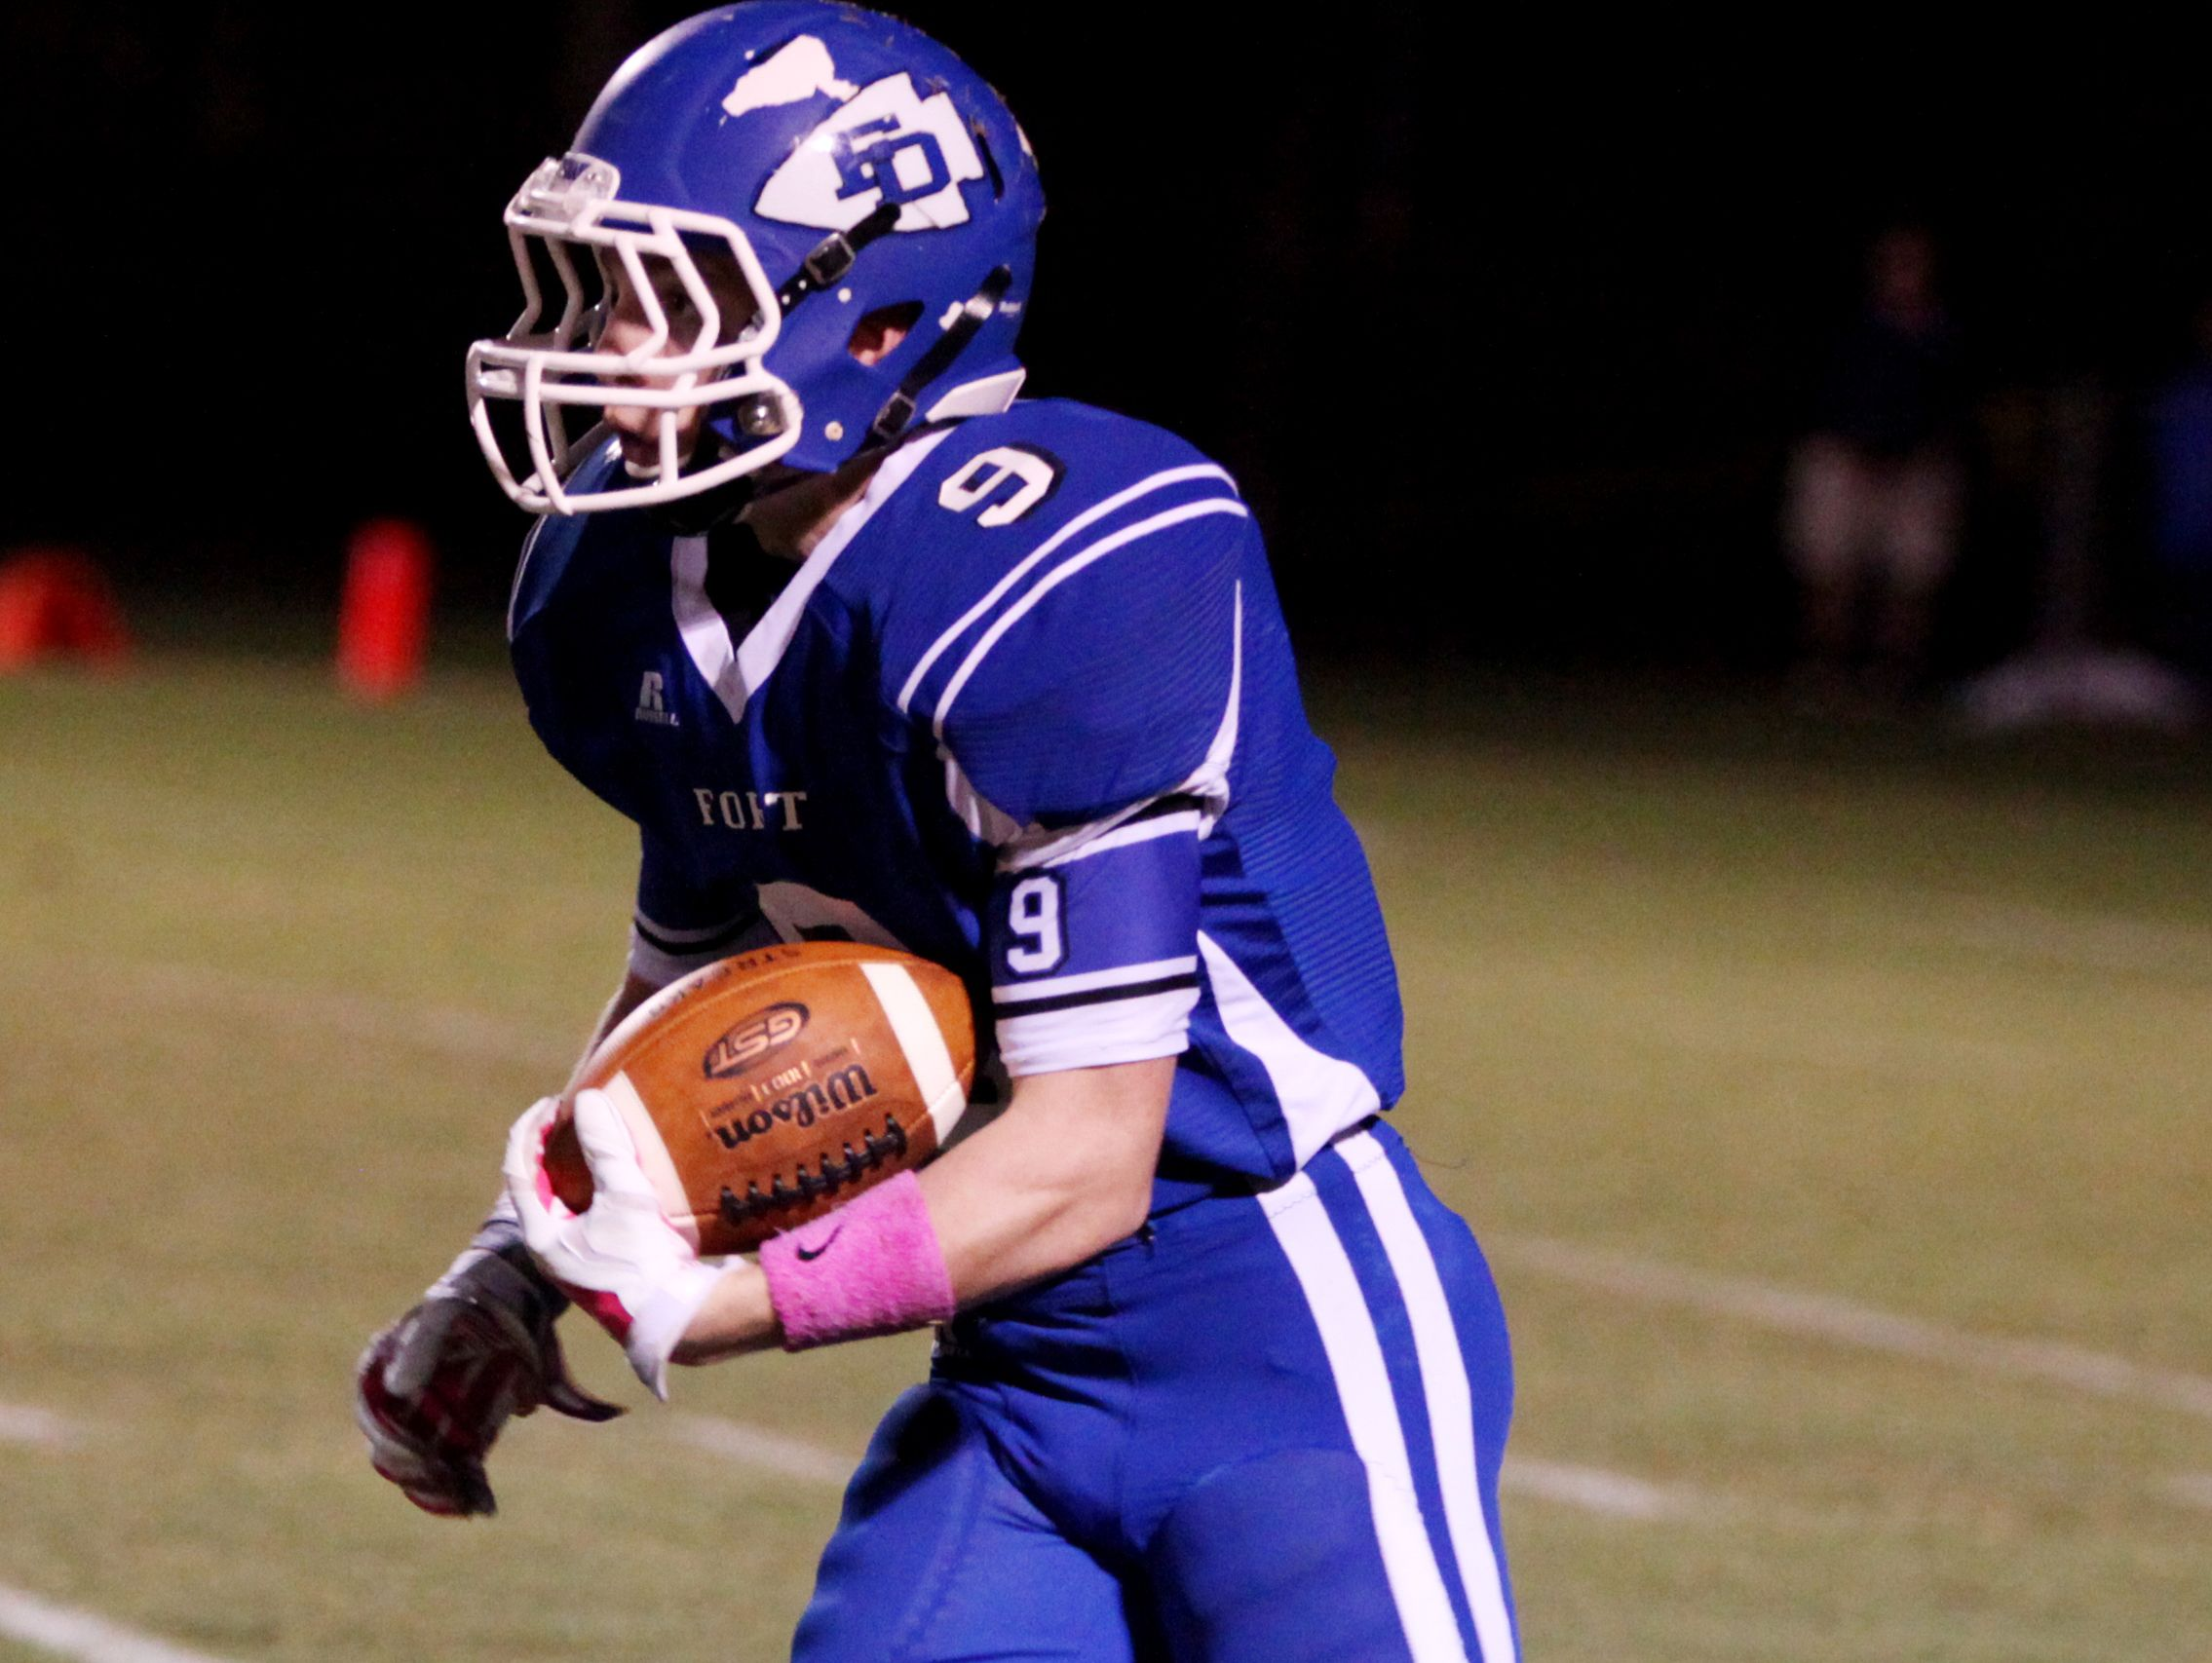 Fort Defiance's Matthew Wonderley catches the kick from Harrisonburg during the second quarter of the game on Friday, Oct. 21, 2016 at Fort Defiance.